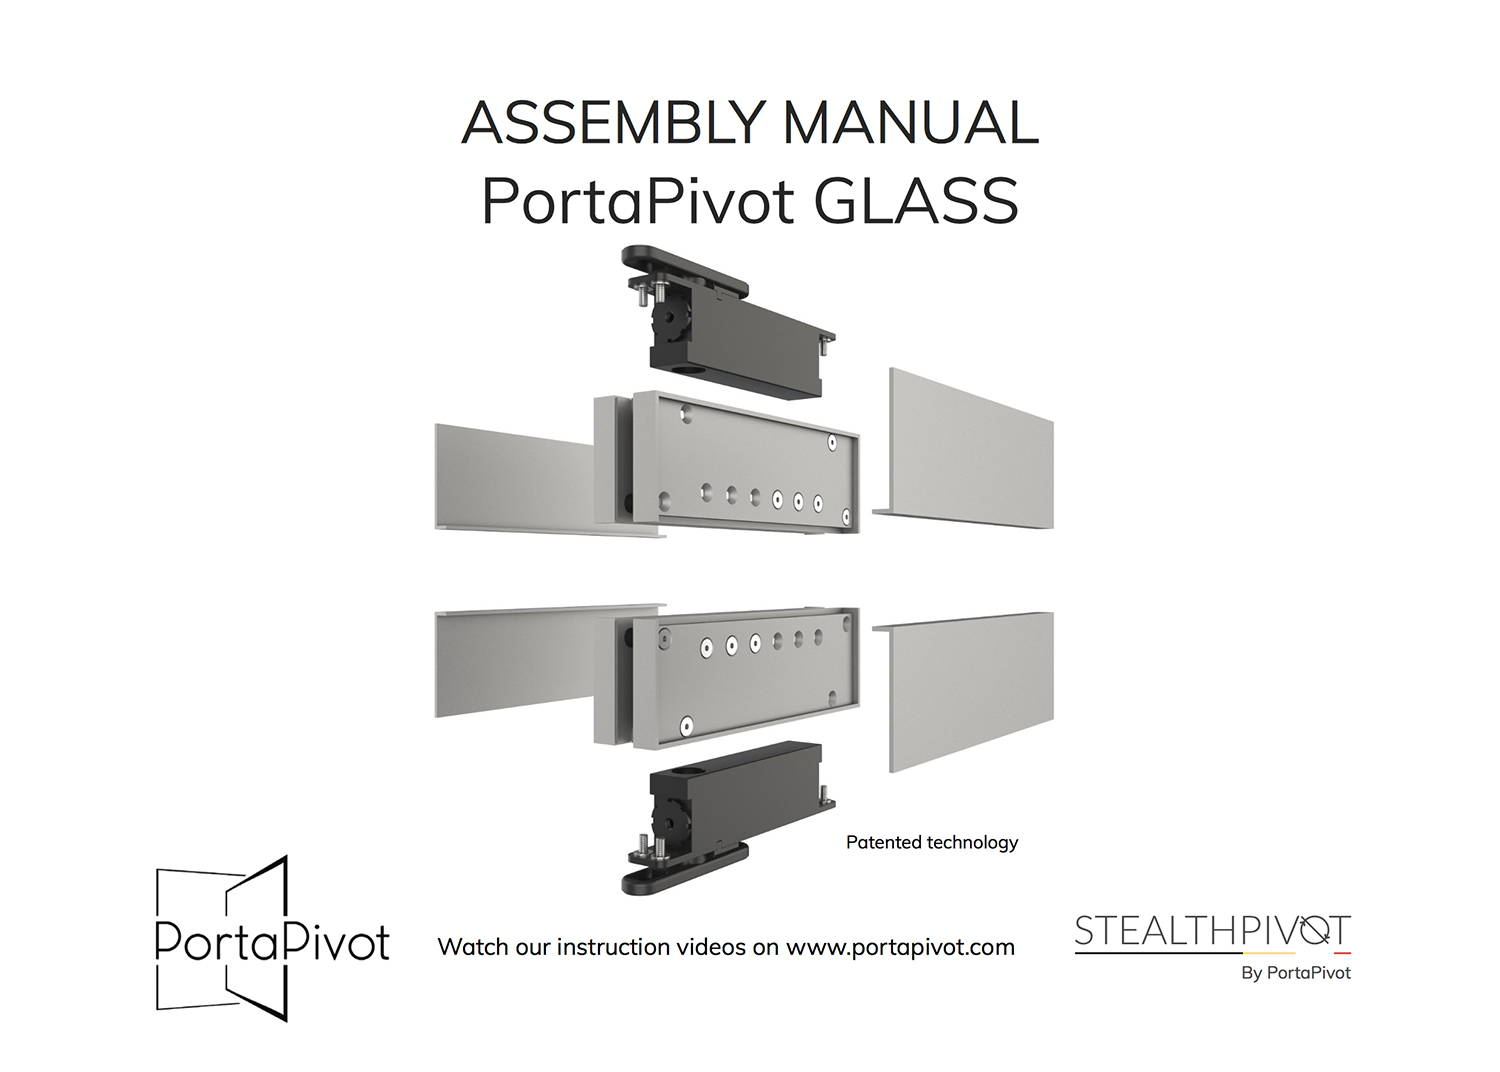 Portapivot Glass NL assembly manual